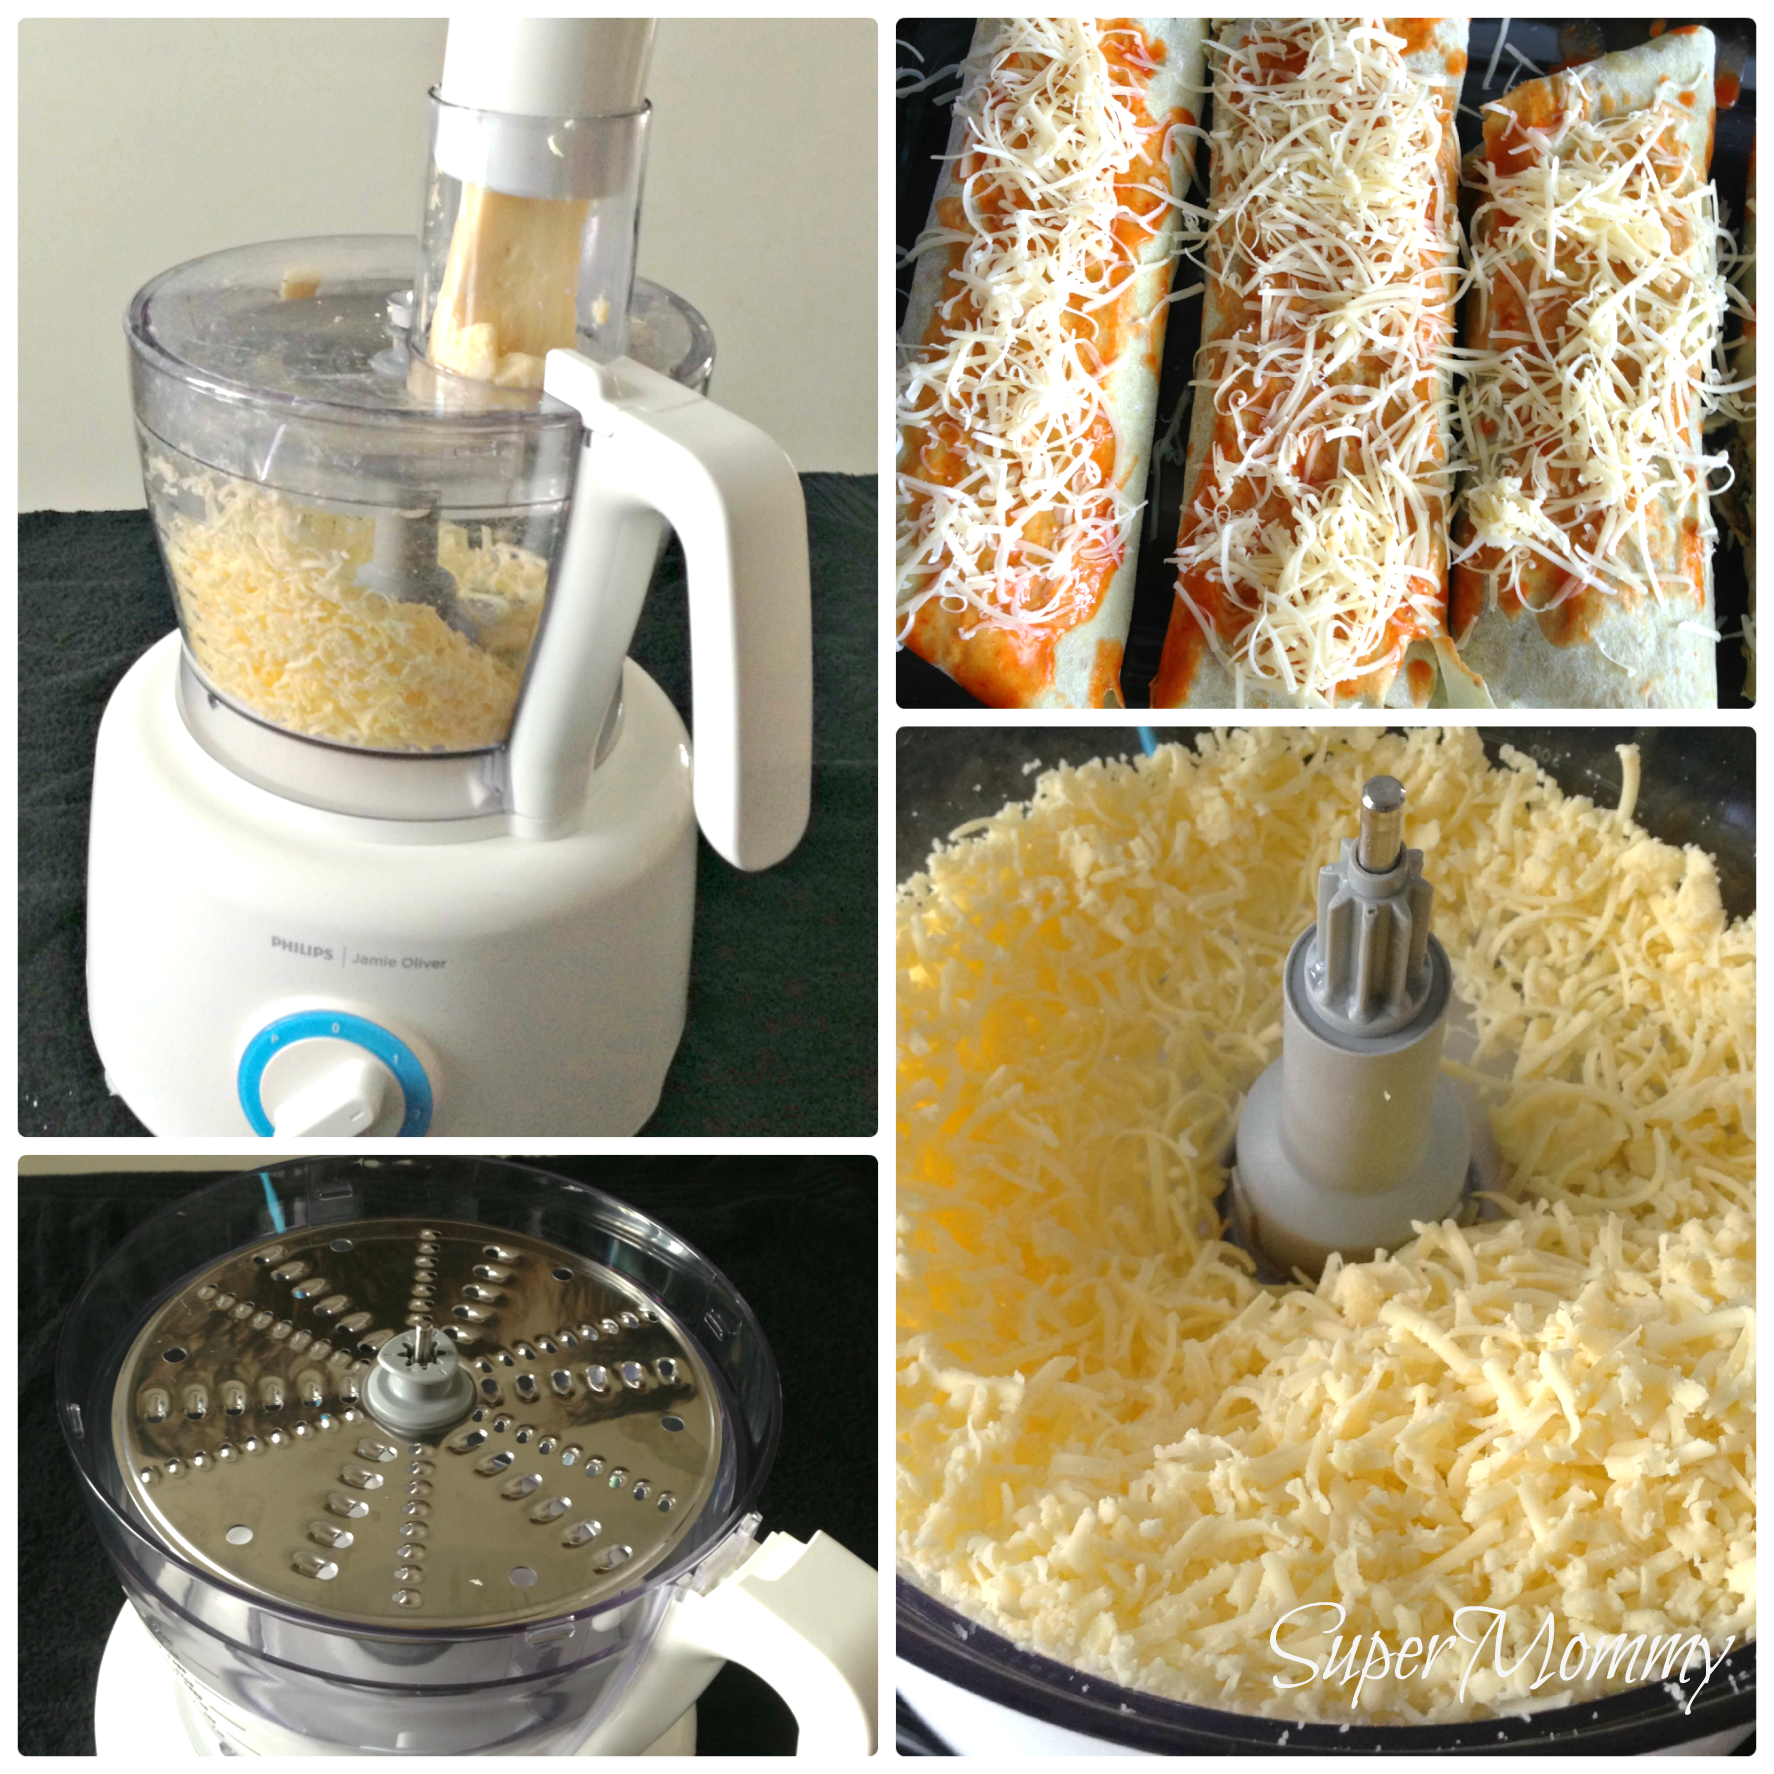 The philips jamie oliver food processor helping busy moms money forumfinder